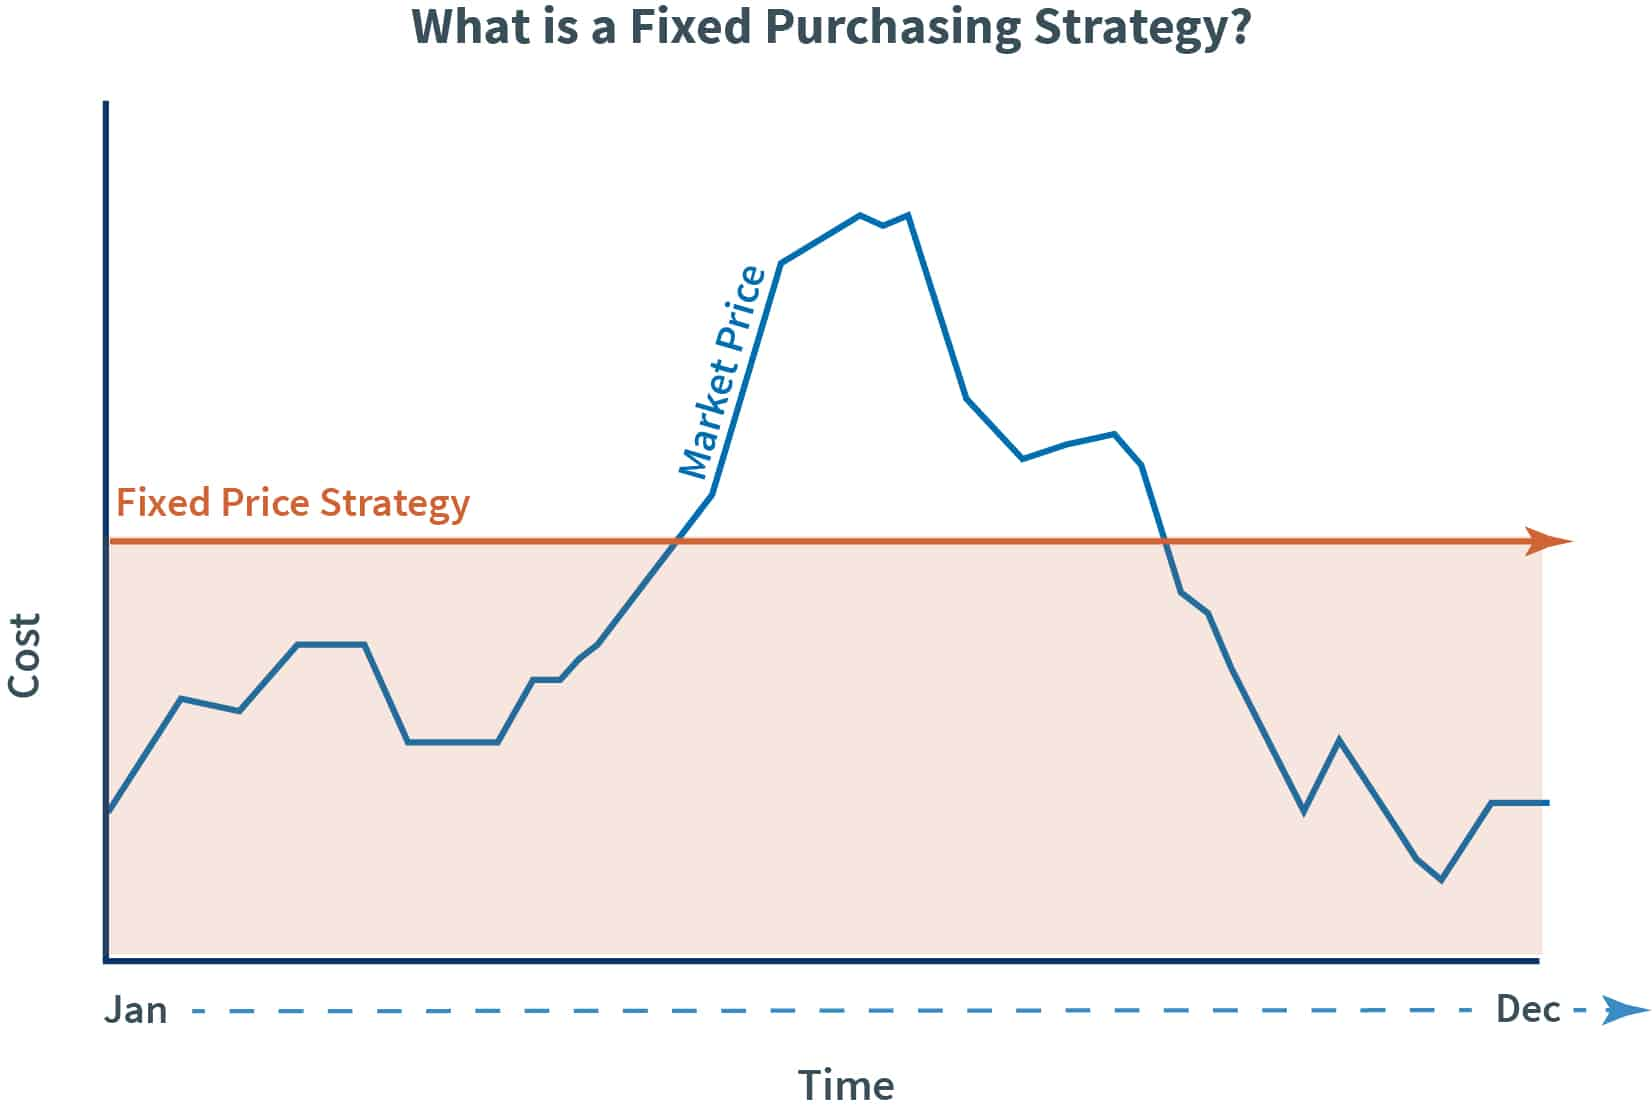 Fixed Price Strategy graph